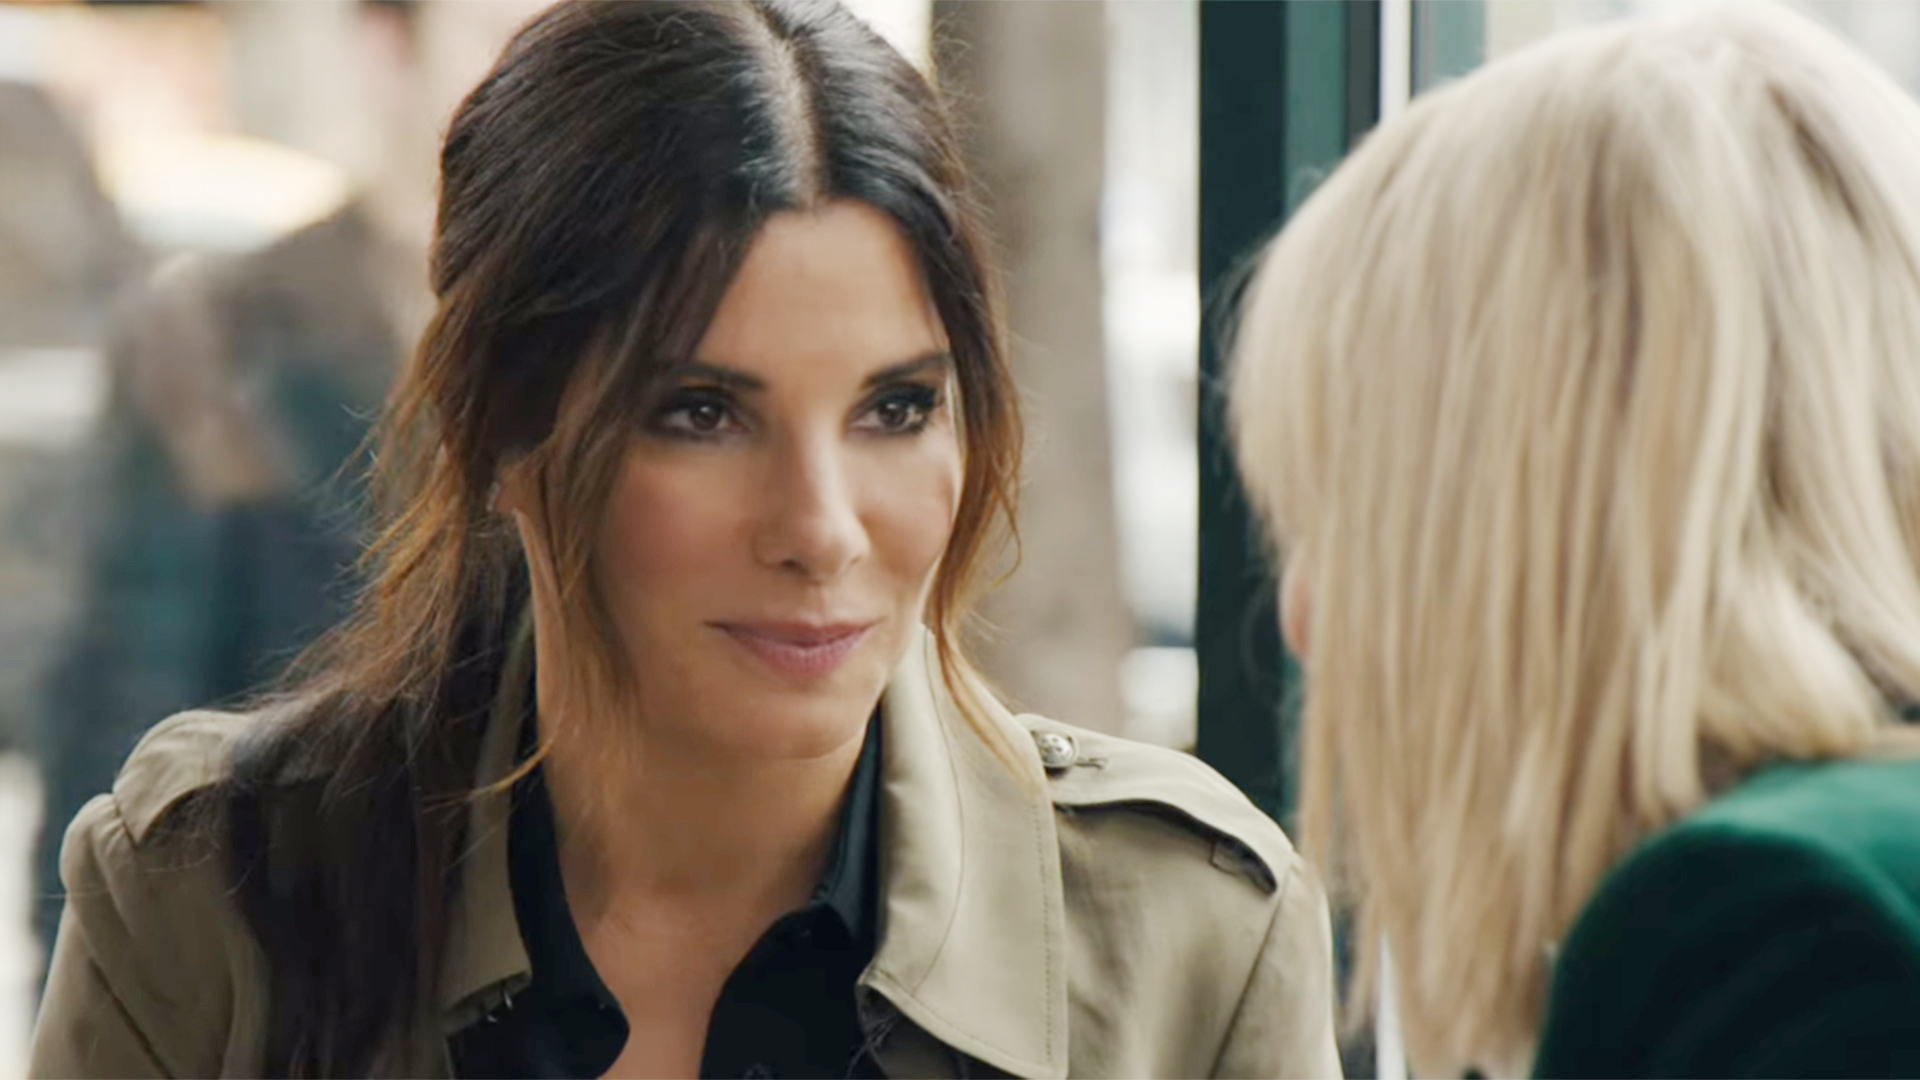 g19 20 Things You Might Not Have Realised About Sandra Bullock